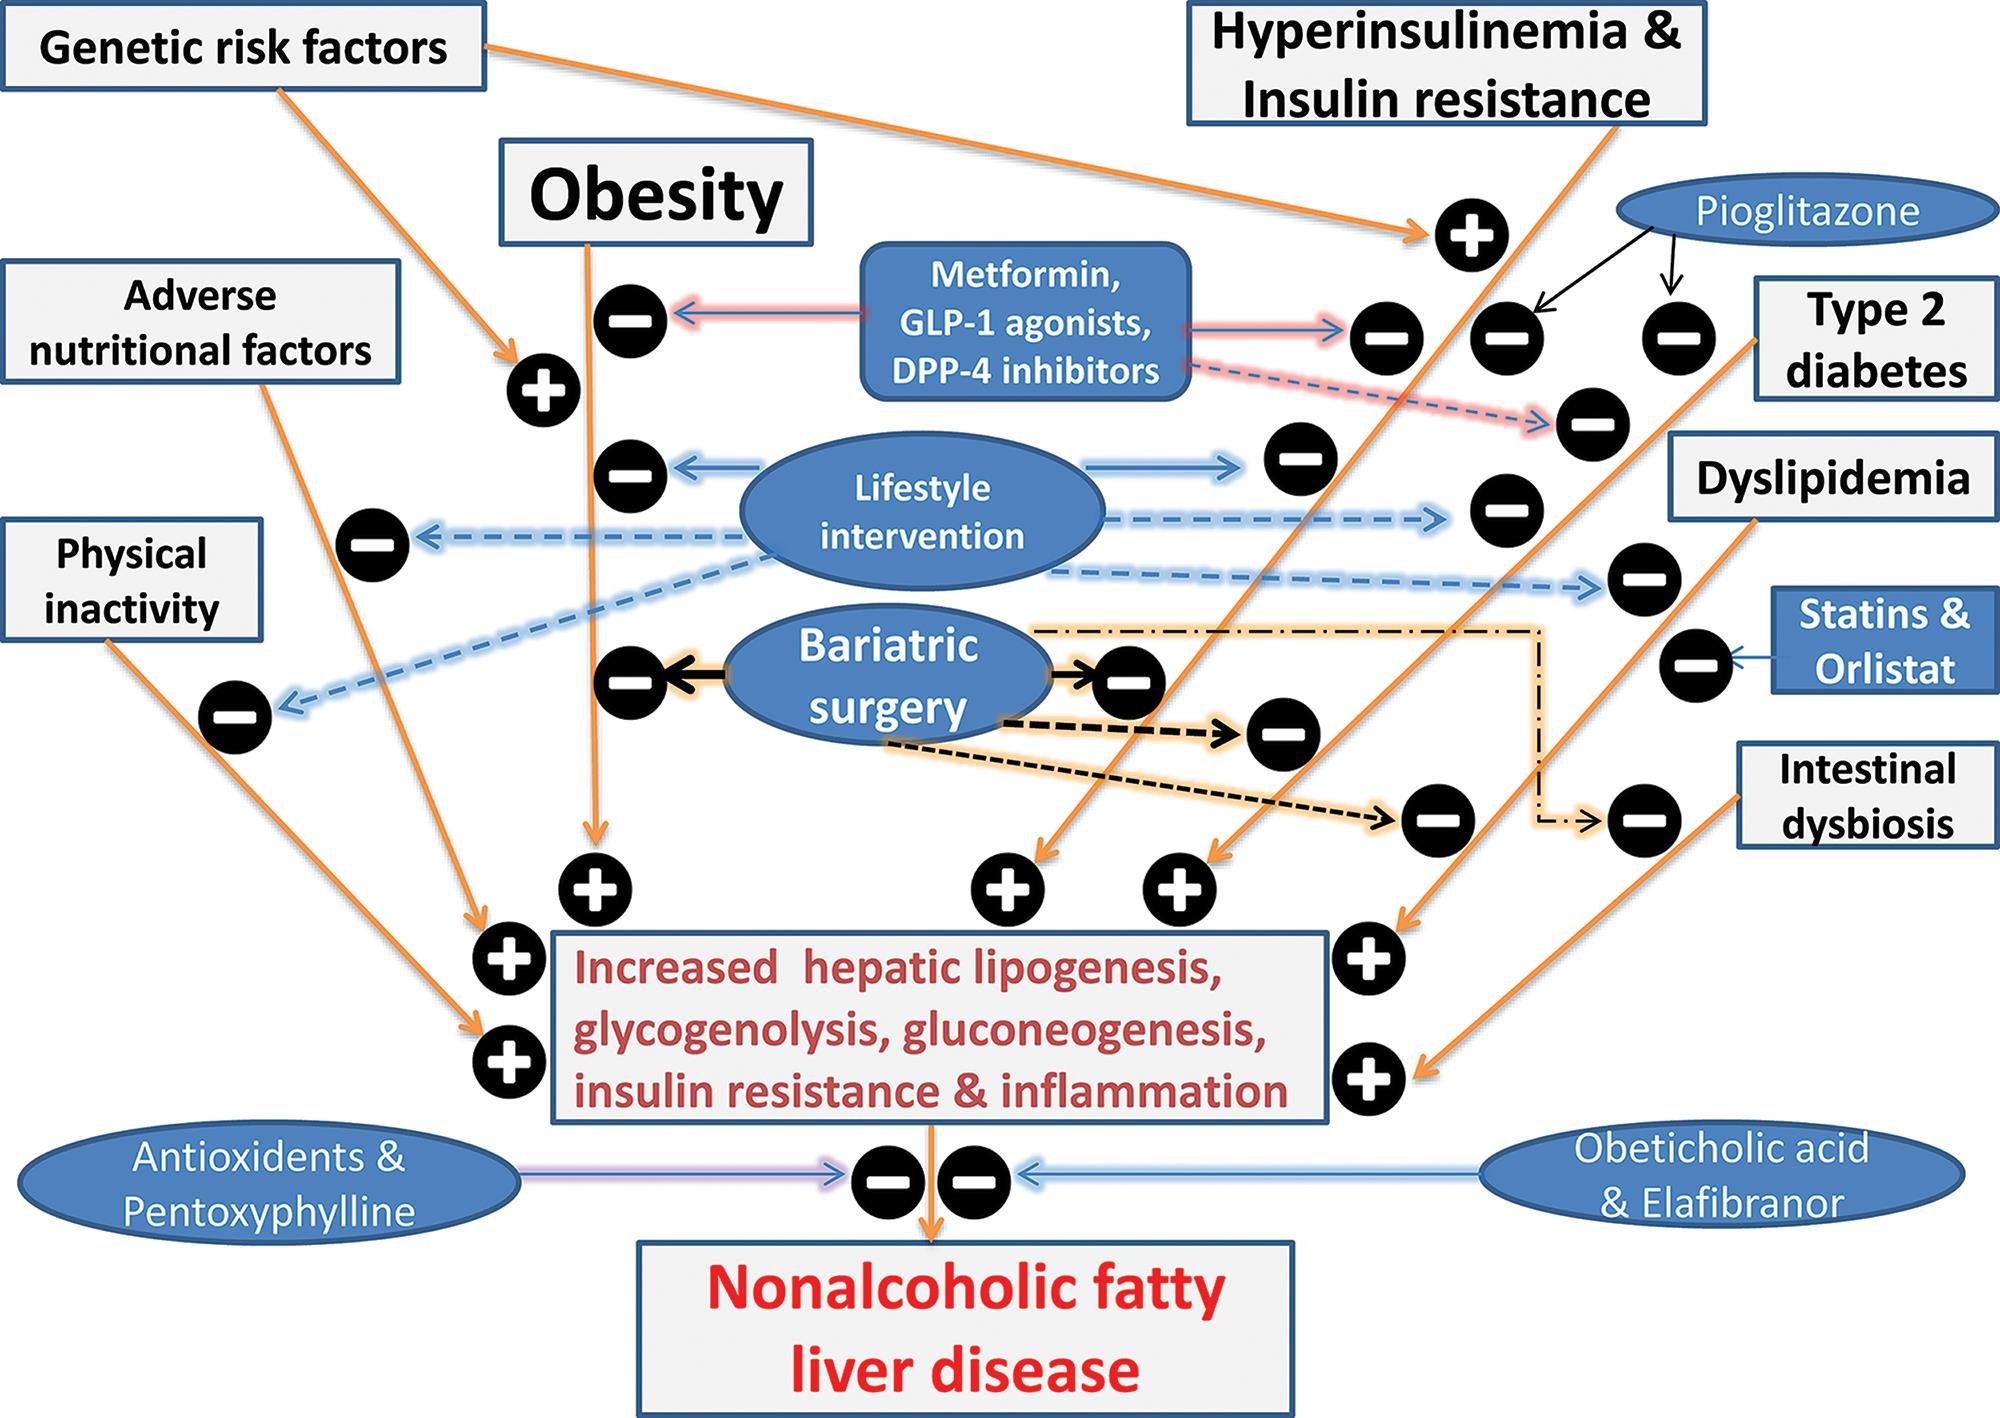 Pathogenesis of nonalcoholic fatty liver disease and effects of various therapeutic interventions.